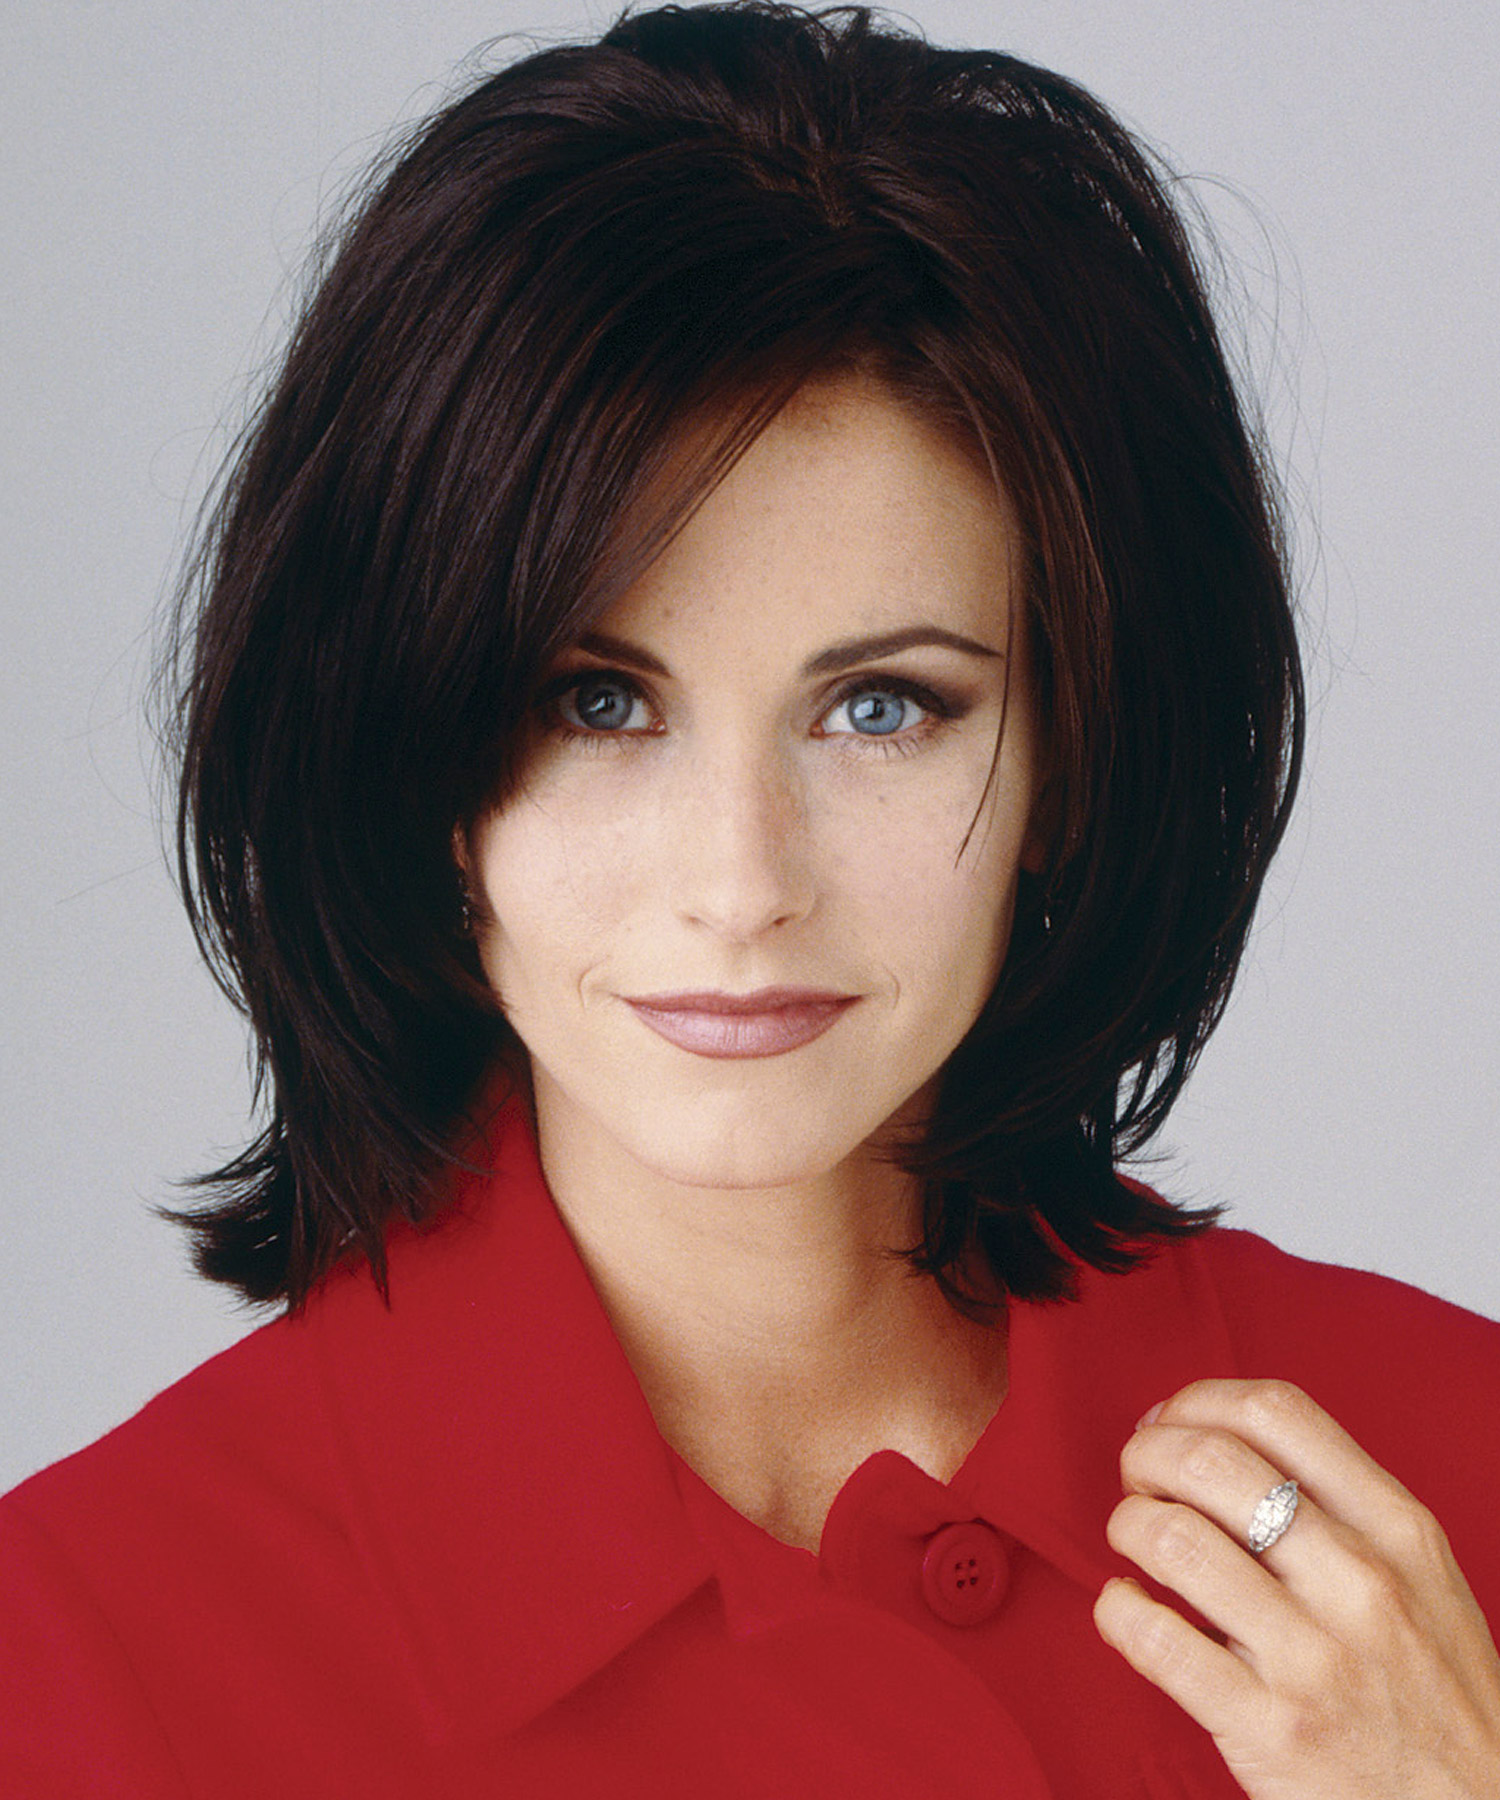 courteney cox through the years - us weekly